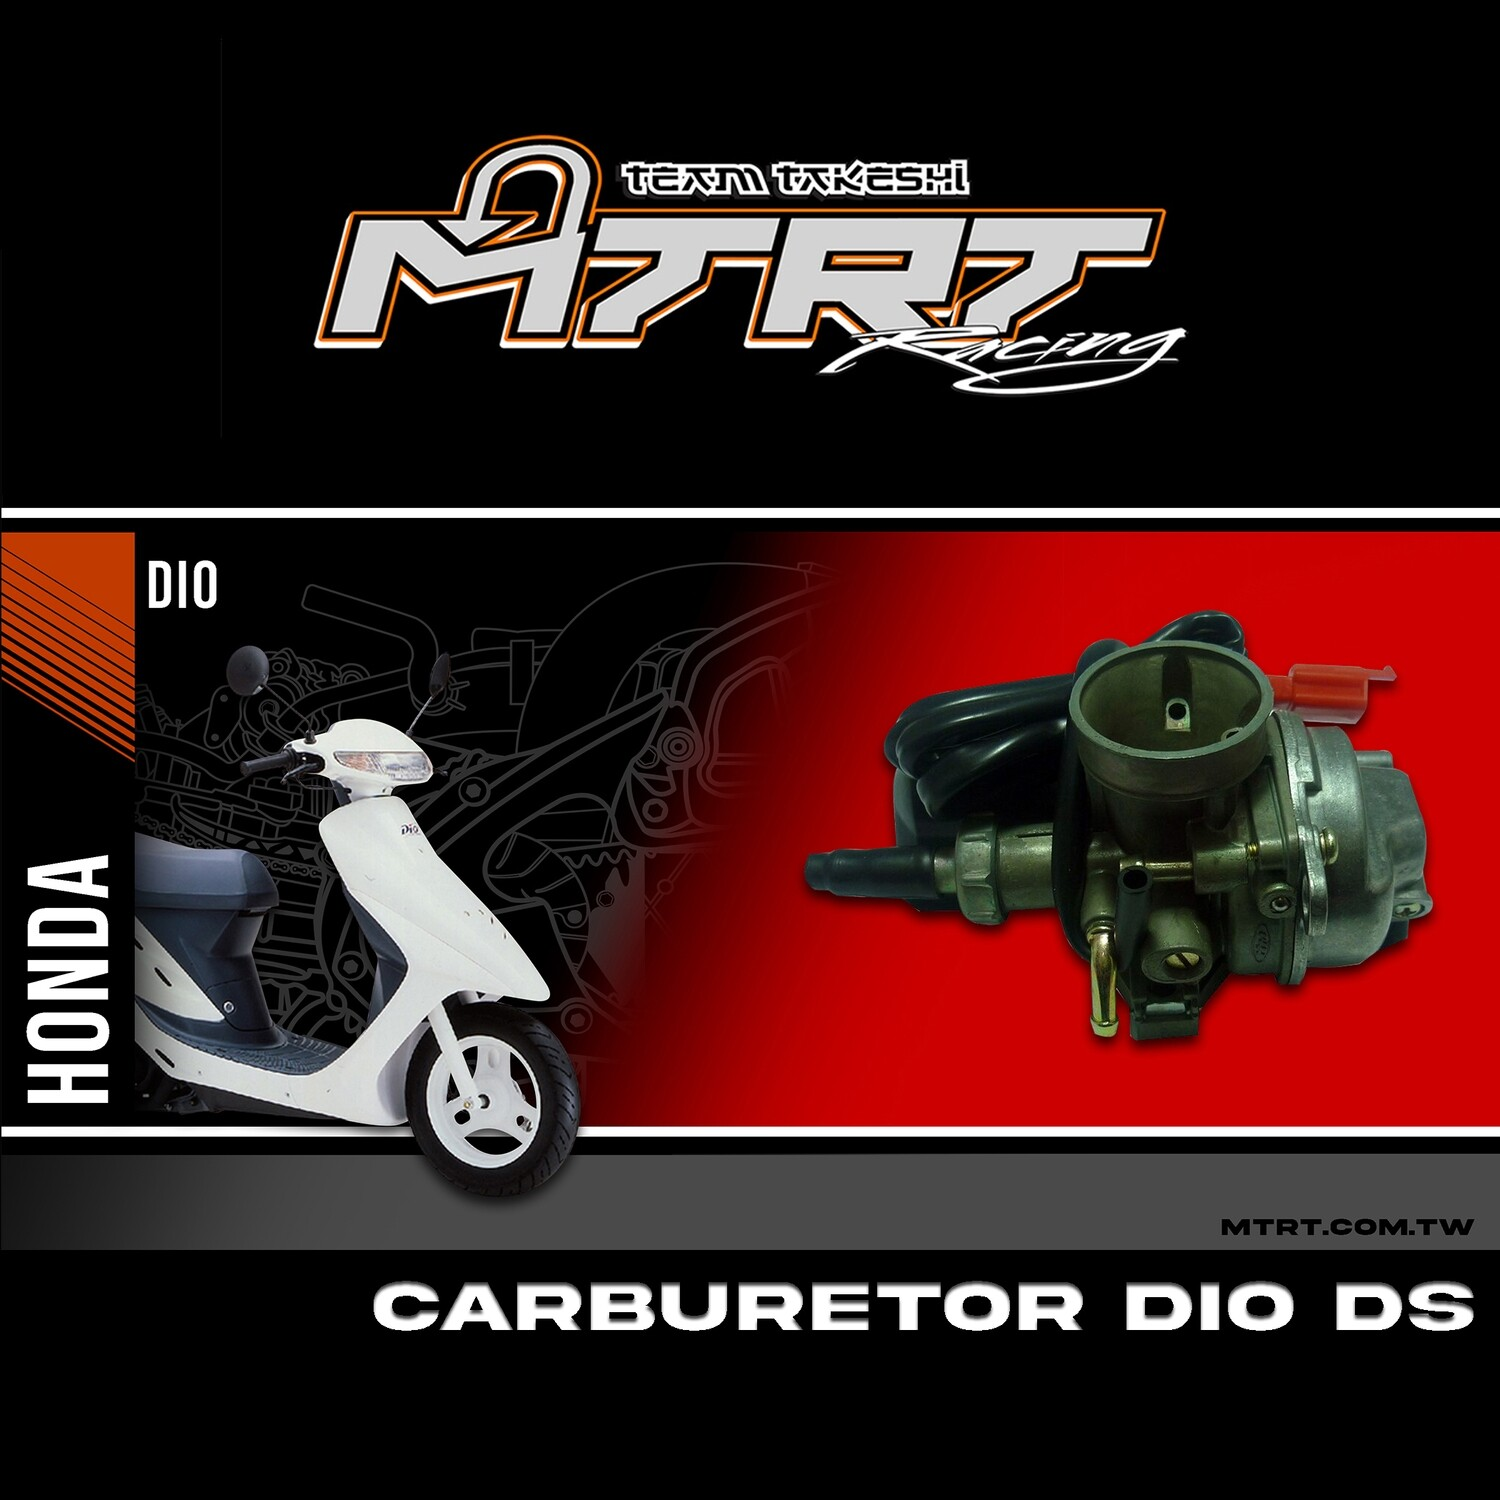 CARBURATOR  DIO  DS